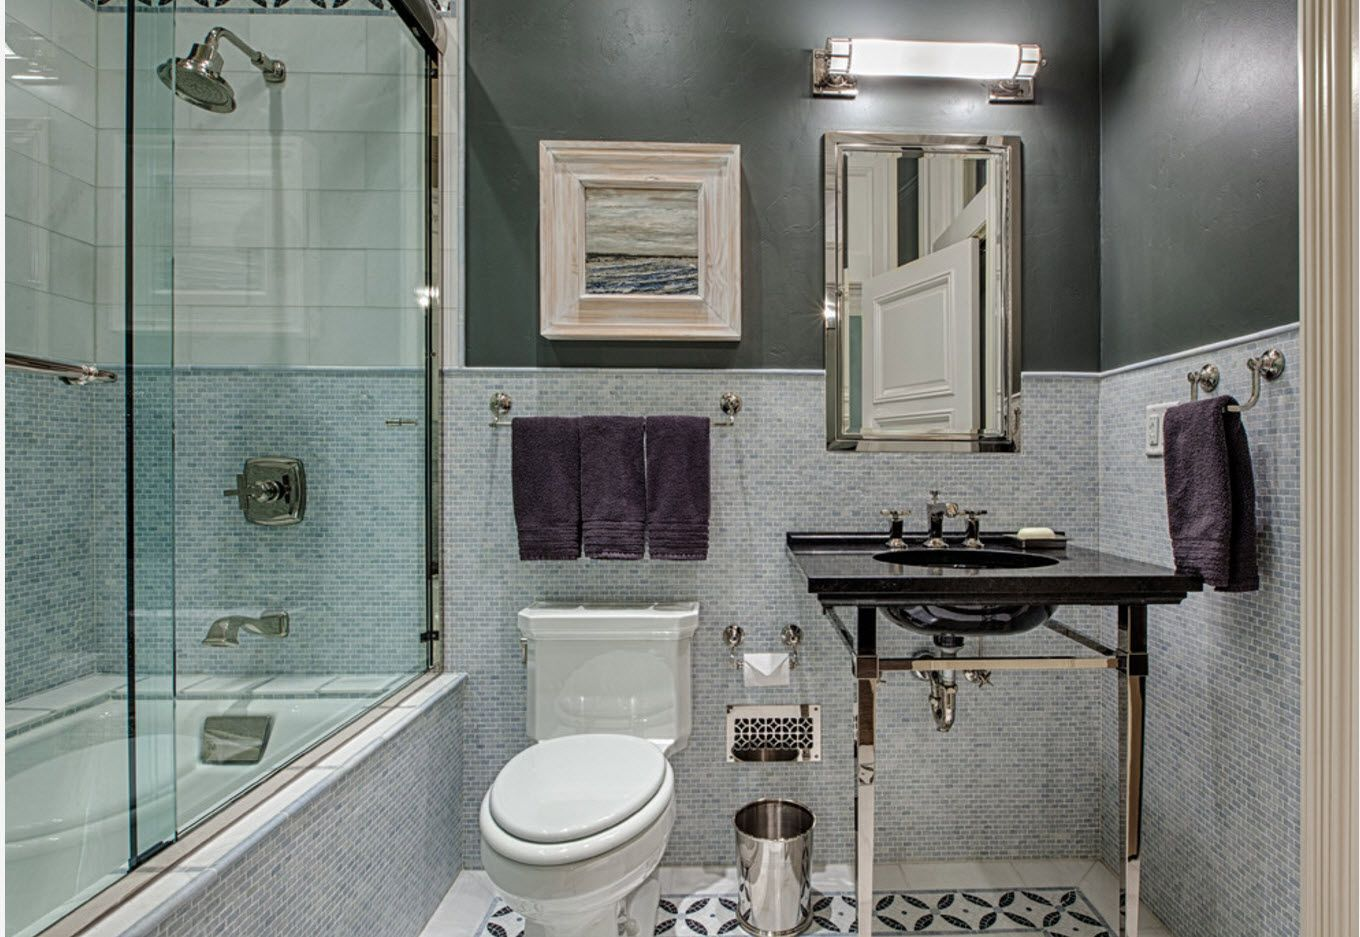 Vintage urban design ideas for small space fo the bathroom